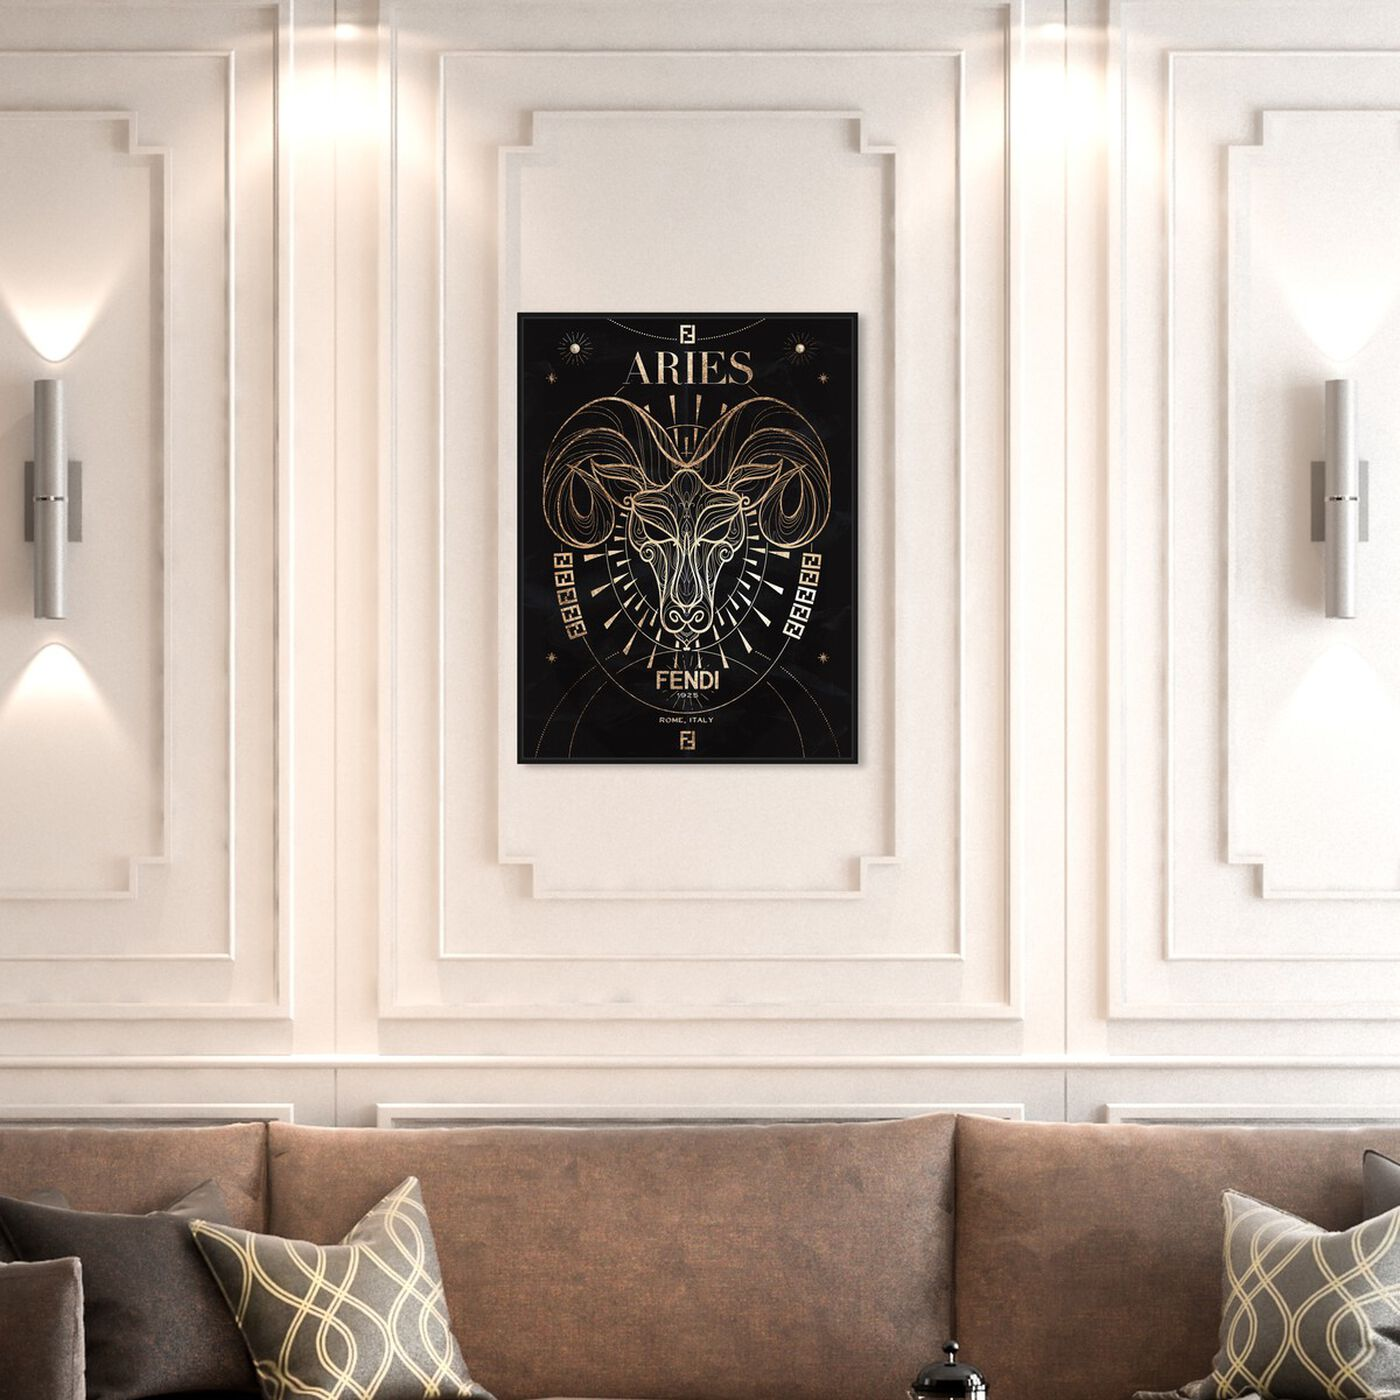 Hanging view of Mémoire d'un Aries featuring fashion and glam and lifestyle art.